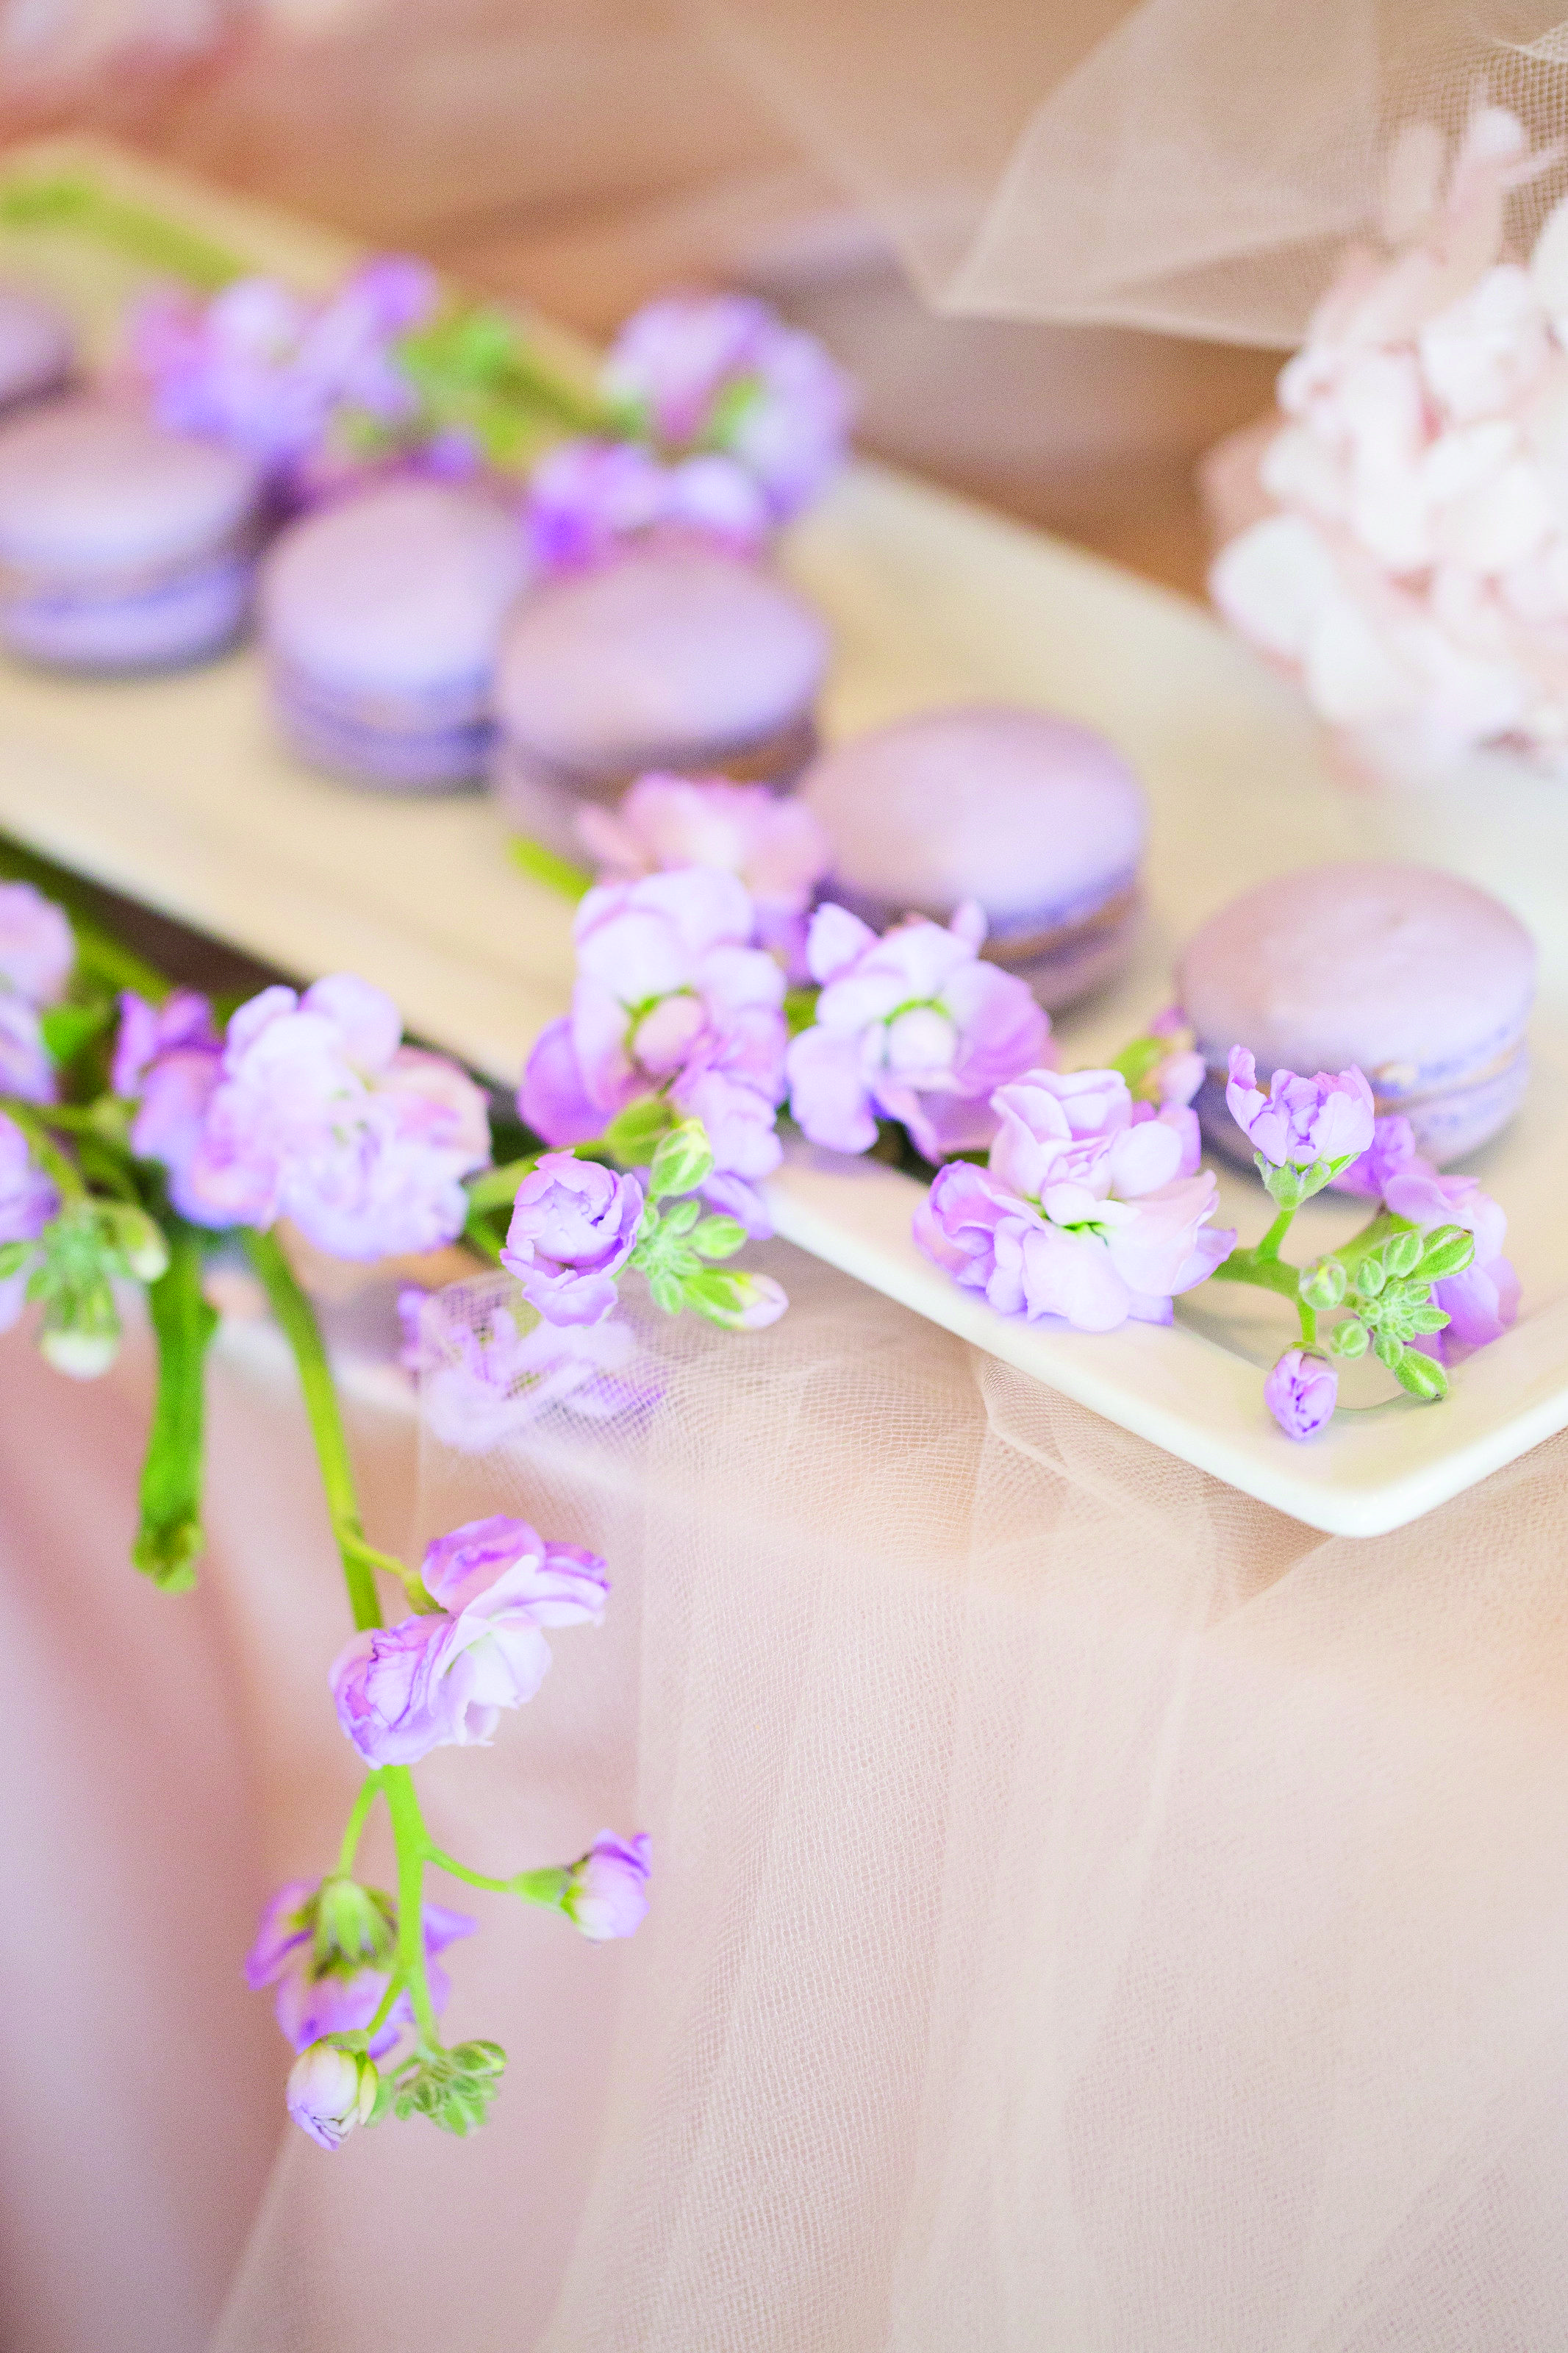 Boho Glam | At First Blush | Planner, Stylist, Creative Director: Le Chic Soiree | Planner, Stylist, Creative Director: Le Chic Soiree | Macarons: Macaronz | Floral Design & Decor: Royal Orchid Florist | Photo: Crystal Hahn Photography | Wedding Decor